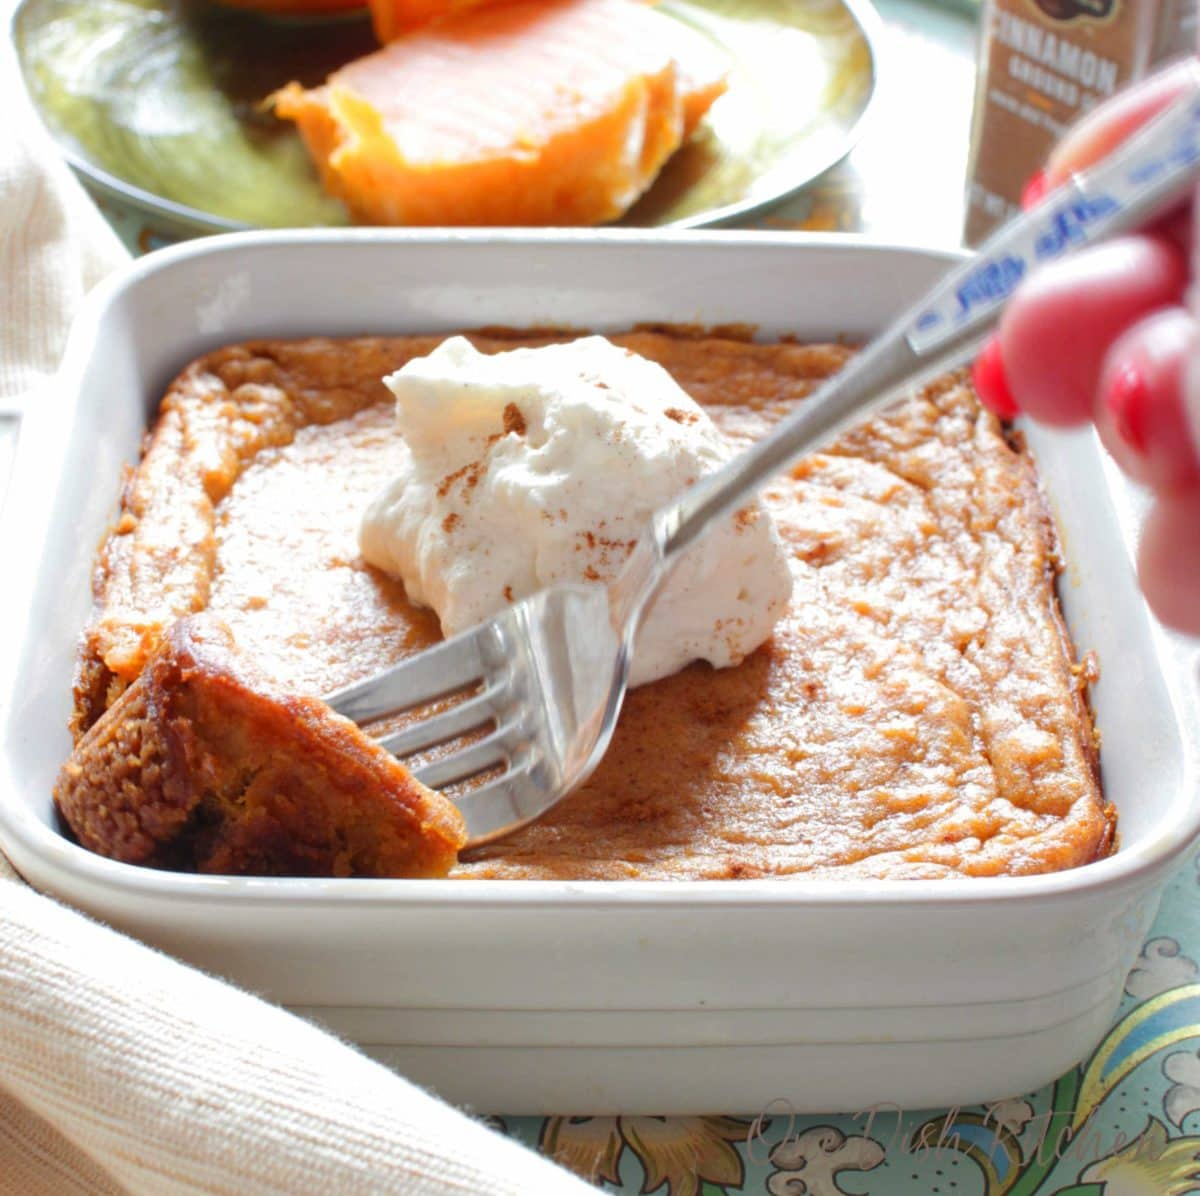 a sweet potato pie being eaten with a fork